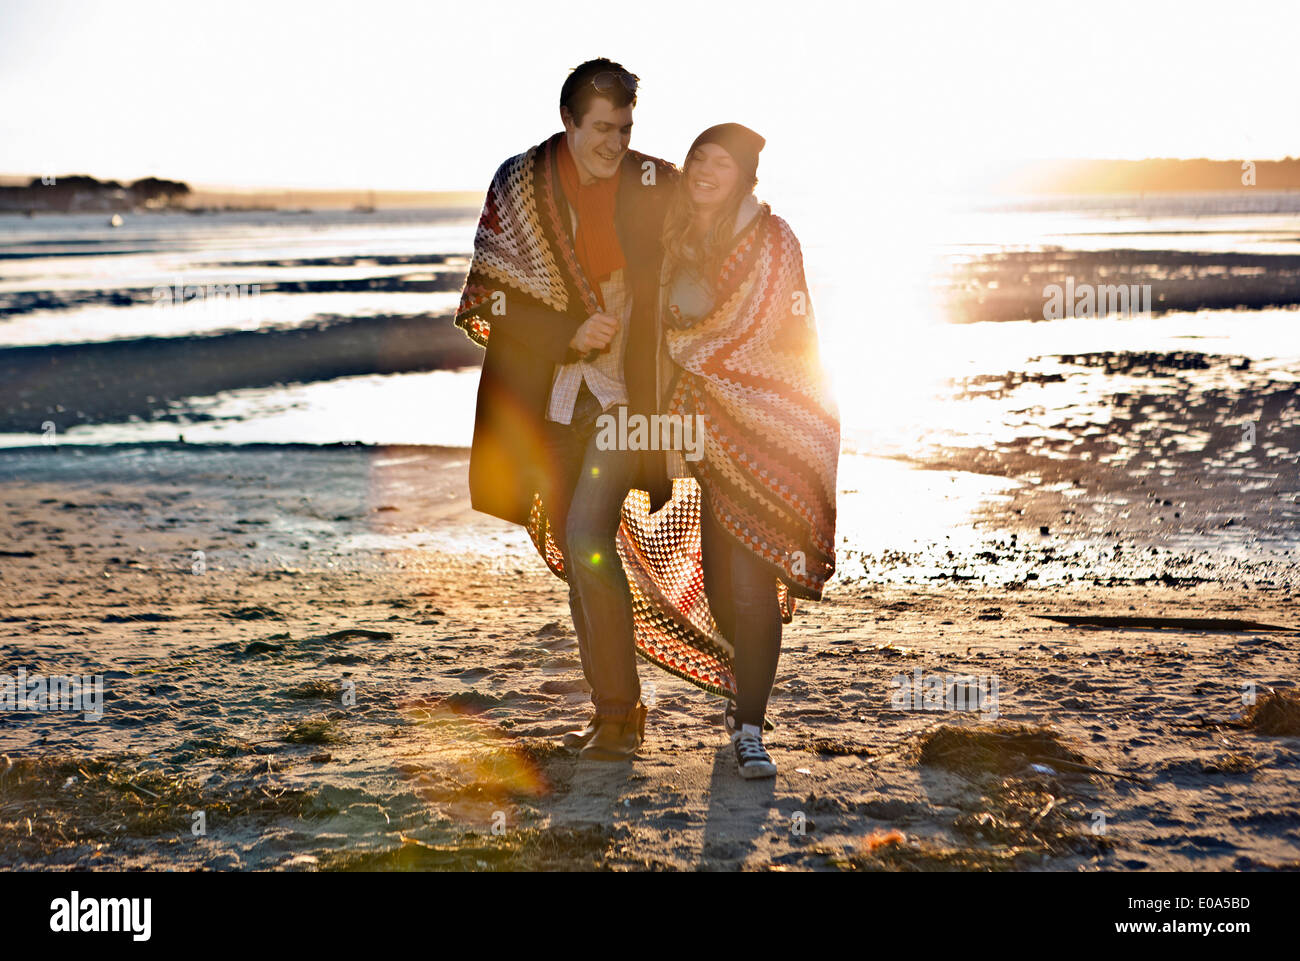 Couple wrapped in a blanket walking on the beach - Stock Image